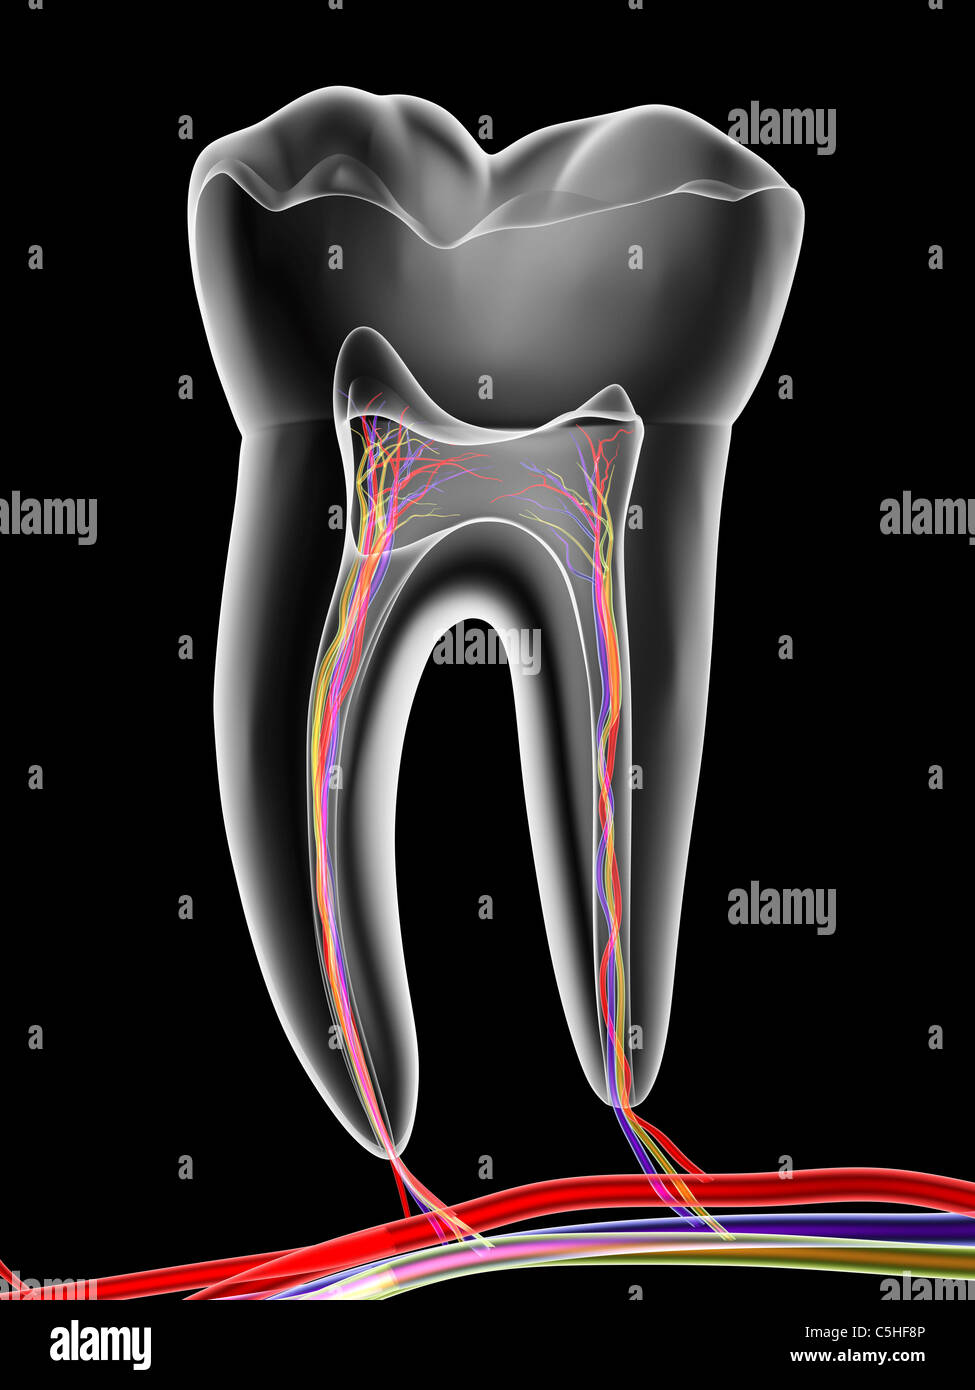 Molar tooth - Stock Image